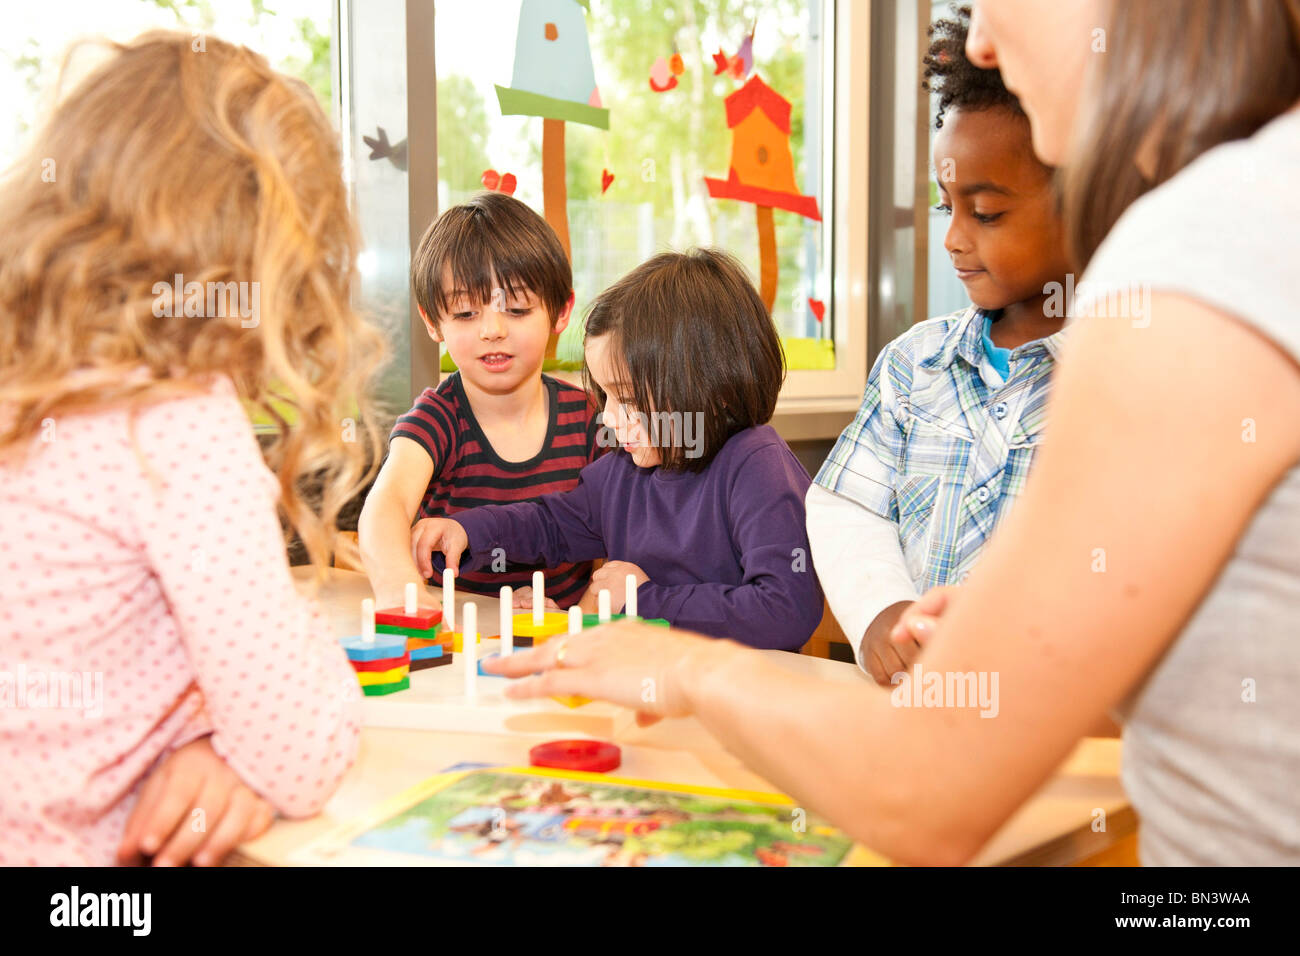 Kindergarten teacher playing children - Stock Image